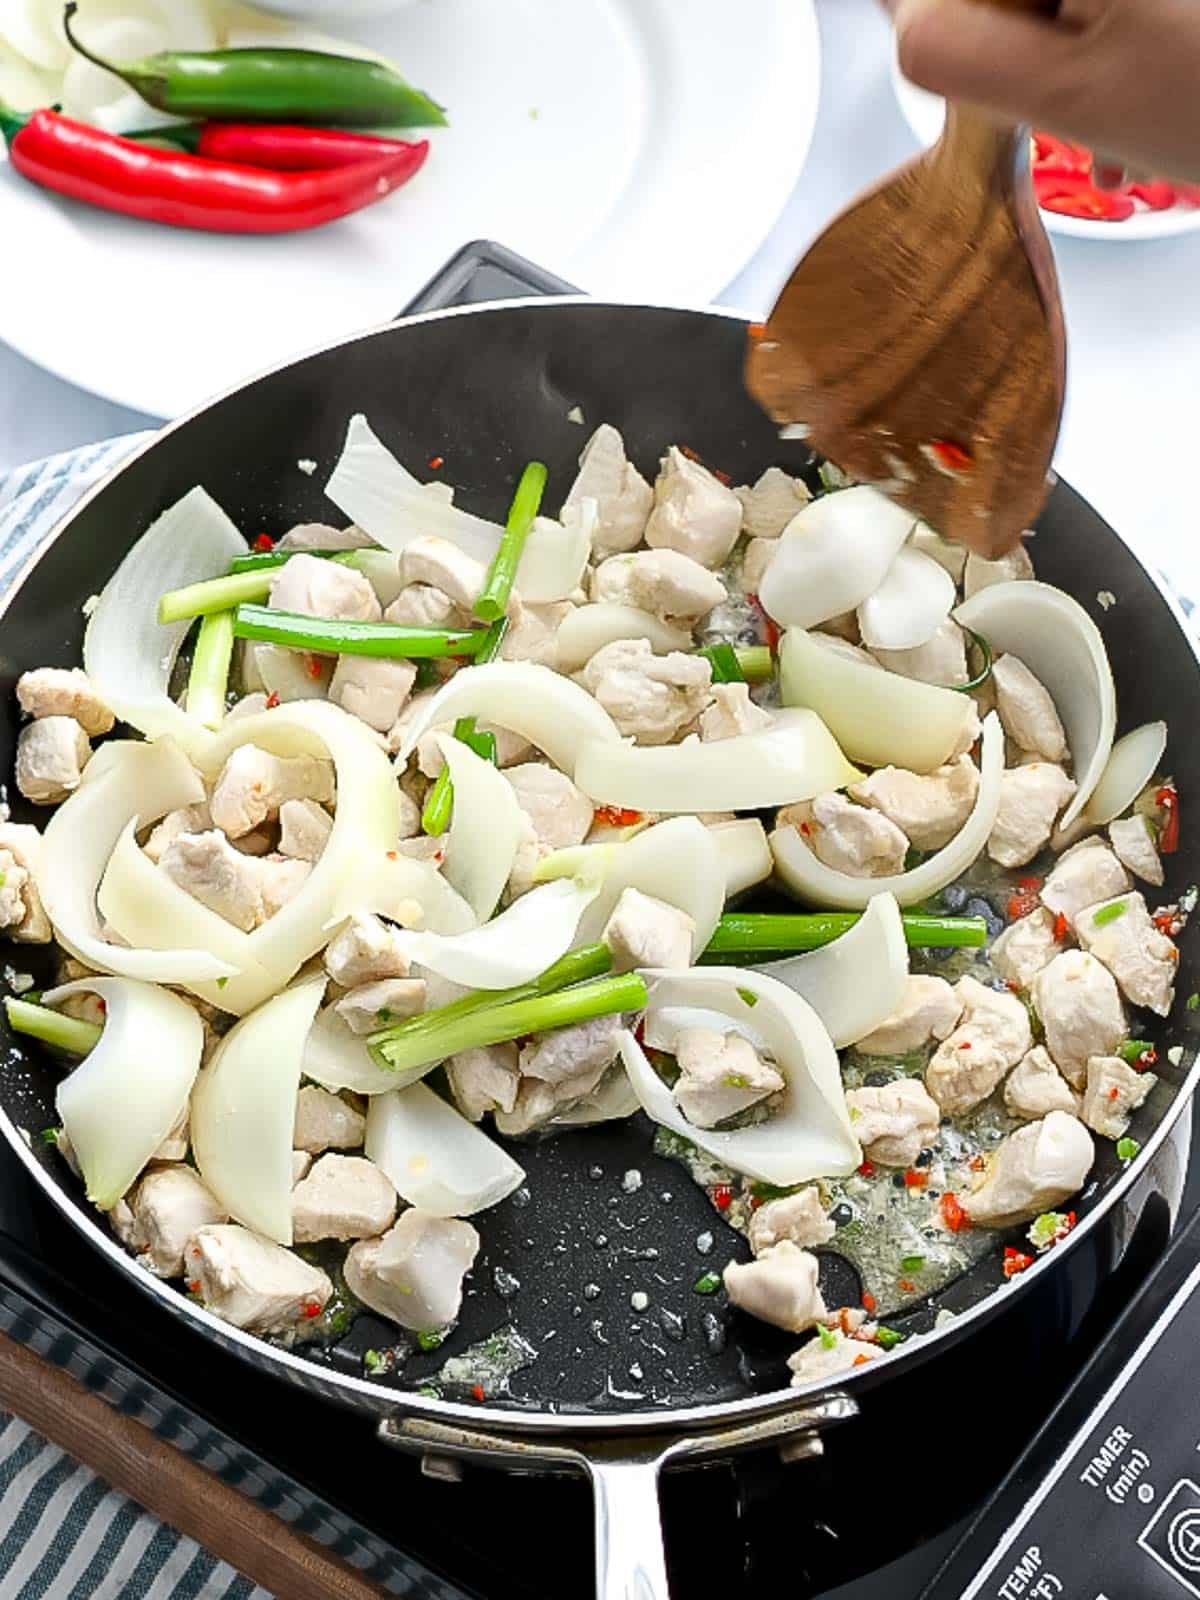 Chicken, onions, and green onions stir frying in a pan.